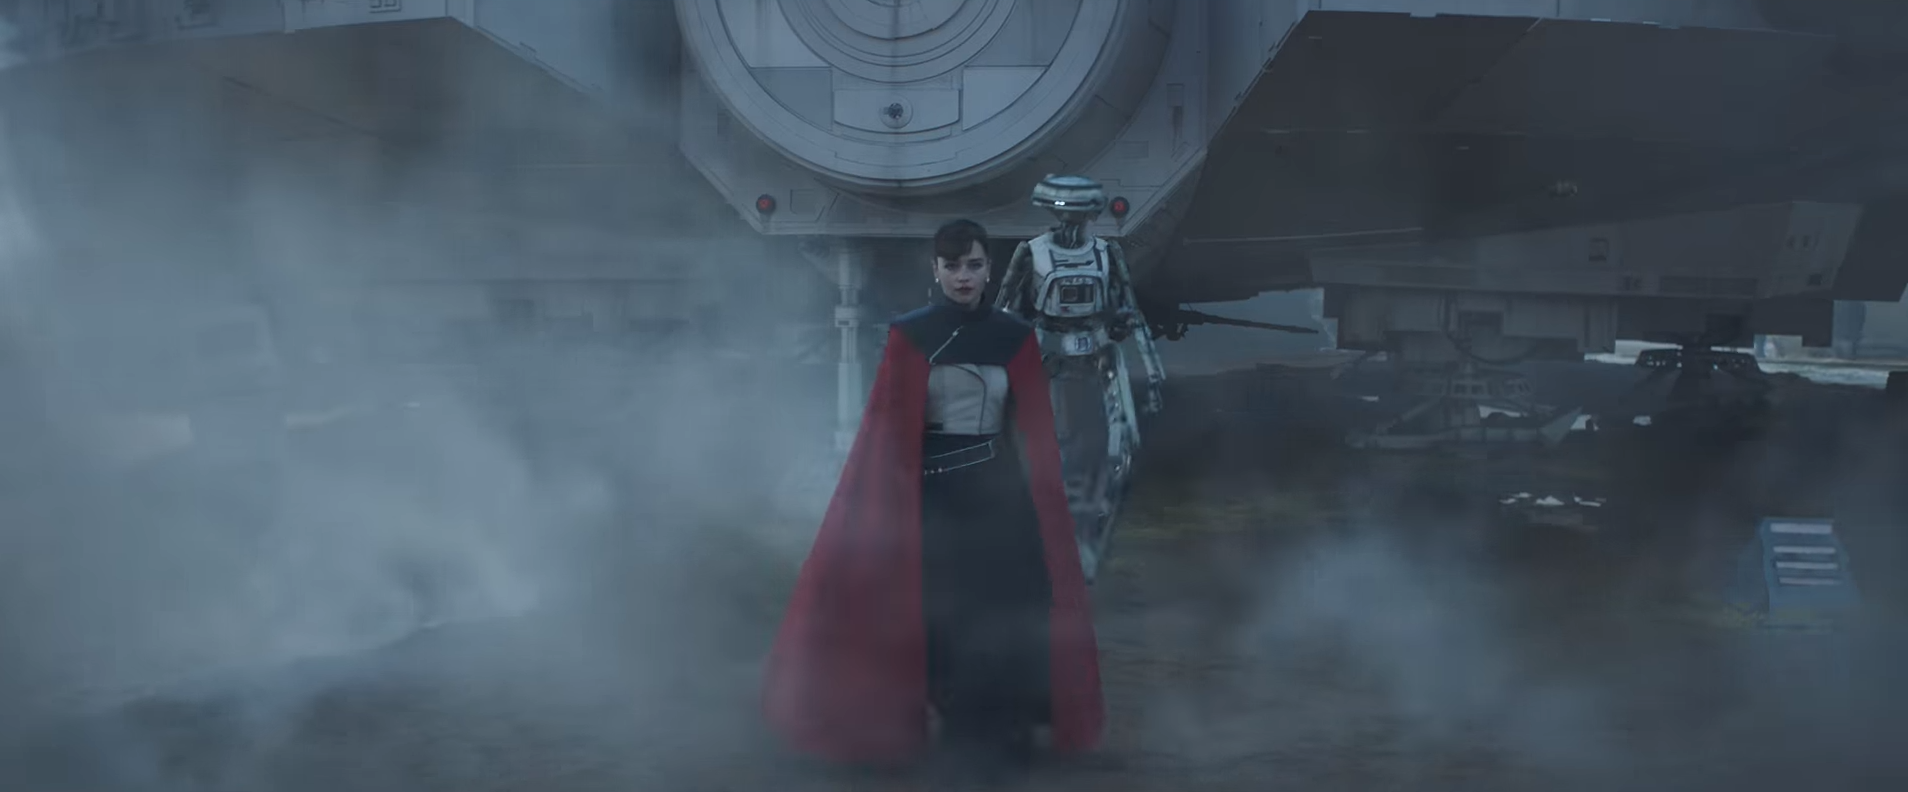 Rogue One: A Star Wars Story' Teaser Trailer pics